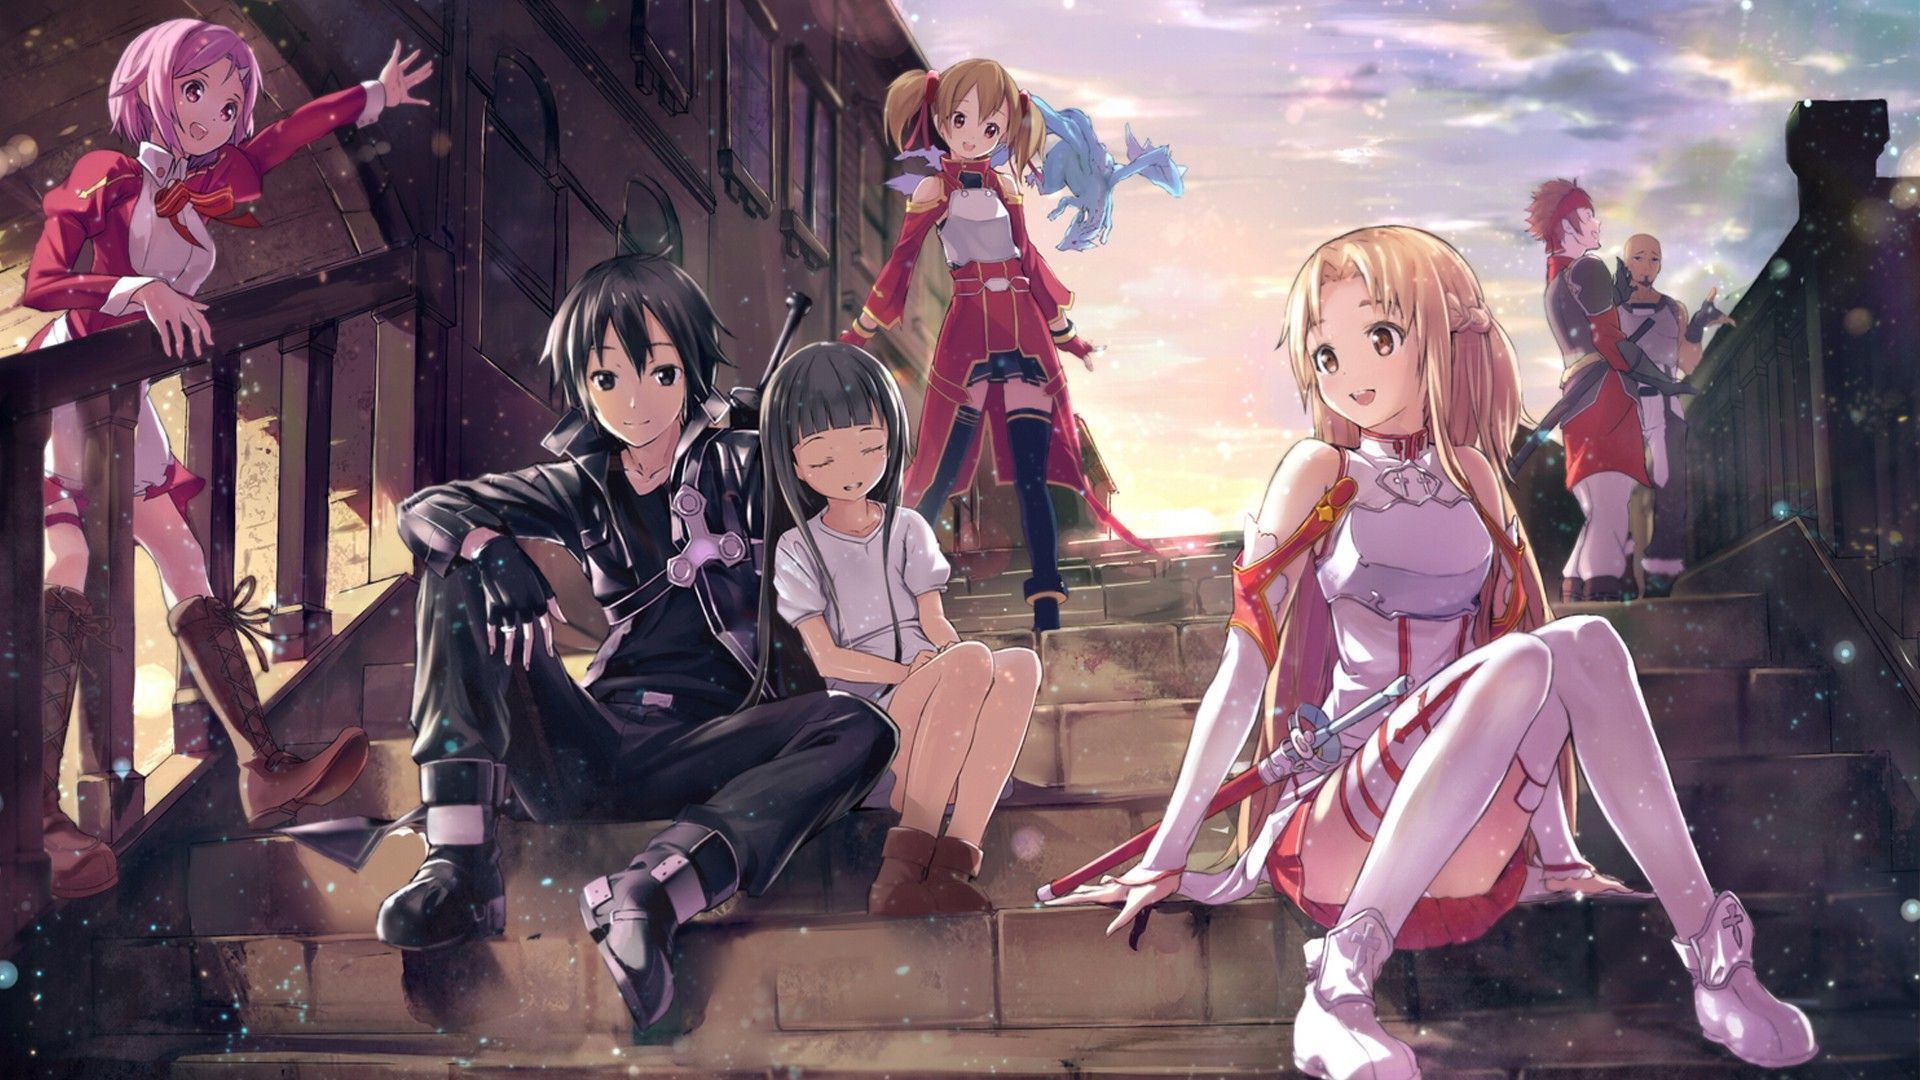 Sword Art Online Wallpaper Full Hd Sword Art Online Wallpaper Sword Art Sword Art Online